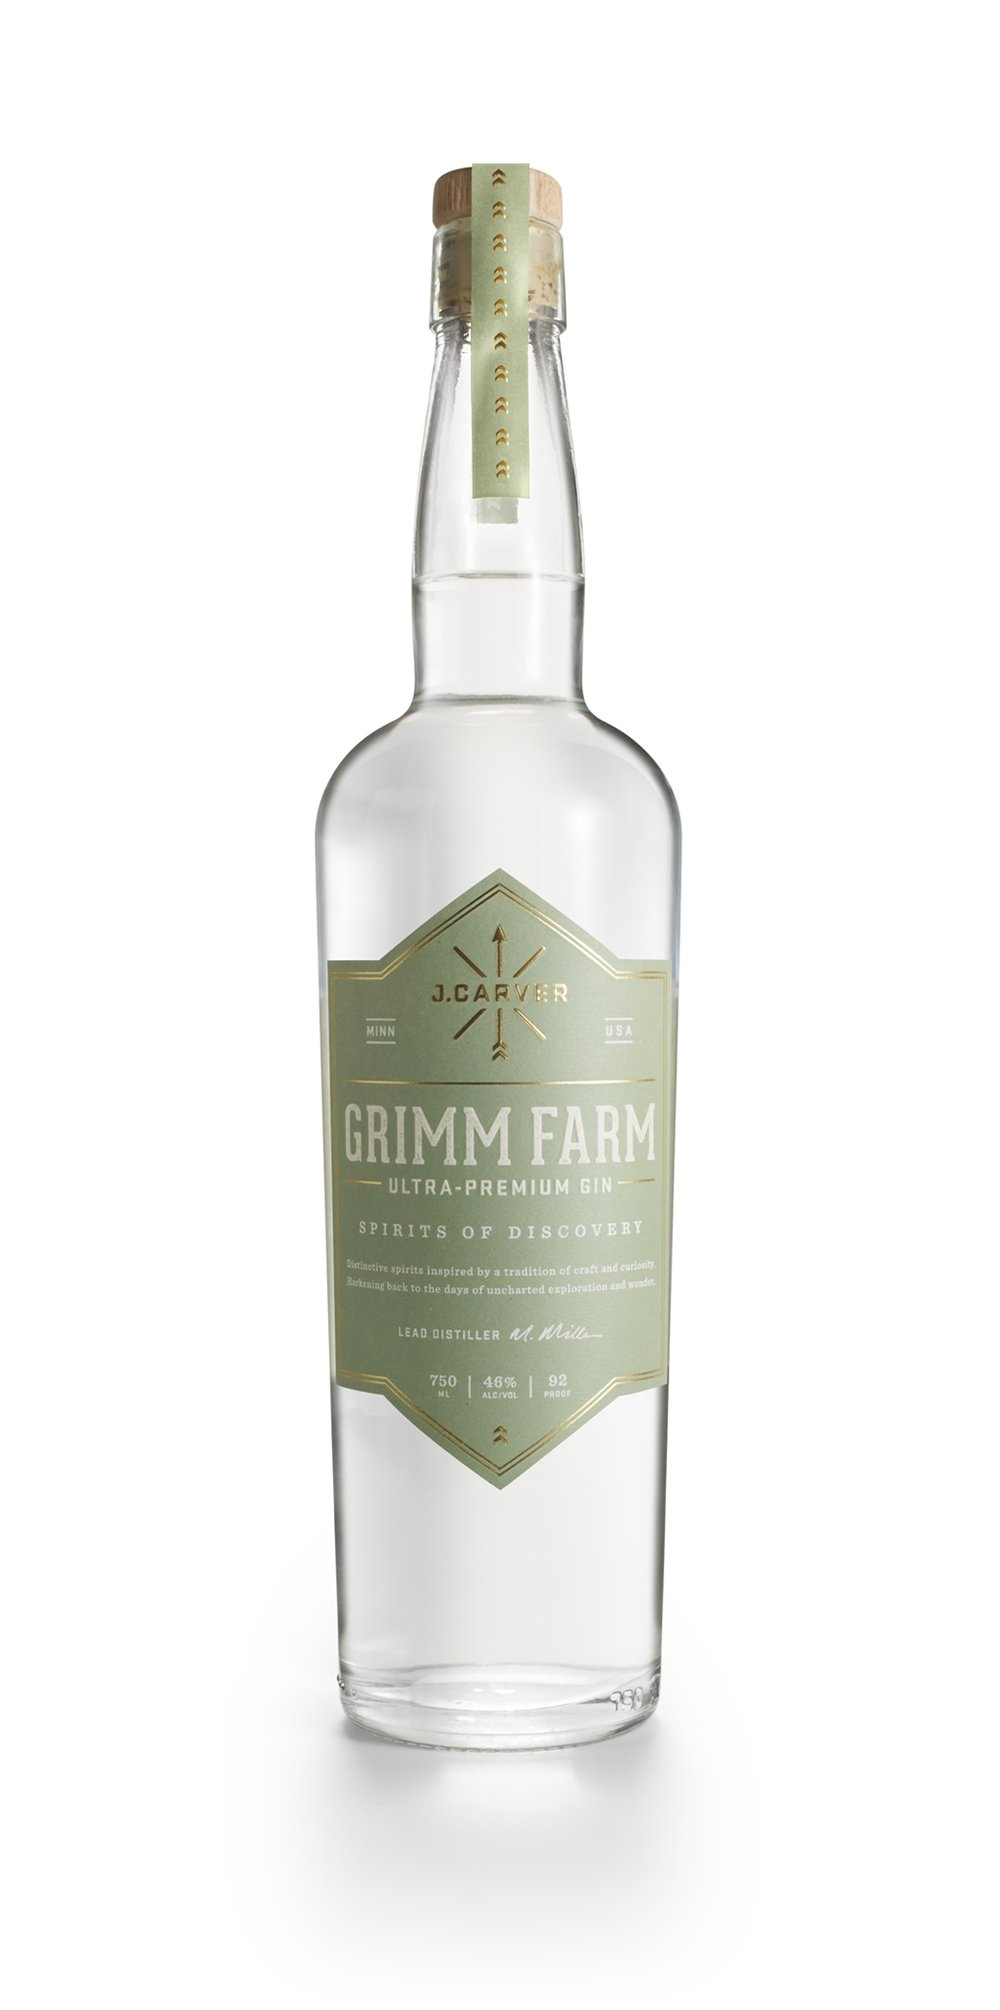 "Grimm Farm Ultra-Premium Gin  Named after Carver County's legendary Wendelin Grimm, this ""gin-lover's gin"" stands alone in its use of two botanicals unique to Minnesota - Grimm's everlasting clover and wild rice. Based on Lake House Vodka and distilled with the flavors of twelve other botanicals including cardamom, orris root and grains of paradise, this 92-proof gin makes any martini or pre-prohibition cocktail stand out. 92 proof  In 1859, immigrant German farmers Wendelin and Julianna Grimm purchased a plot of land in Northern Carver County. Among the possessions they brought from their native country was a small, wooden box containing the seeds of ""ewiger klee"" - German for everlasting clover - which they planted on the farm. For the next fifteen years Wendelin Grimm religiously collected and planted seeds from the plants that survived the harsh Minnesota winters. This selection practice - called seed saving - resulted in the first winter-hardy alfalfa in North America. Grimm's alfalfa not only helped make Carver County a premier dairy belt, but it has become the basis of the alfalfa used on more the 25 million acres in the United States. Grimm Farm is now a historic site in Three Rivers Park District in Victoria, Minnesota, just a few miles east of the distillery."